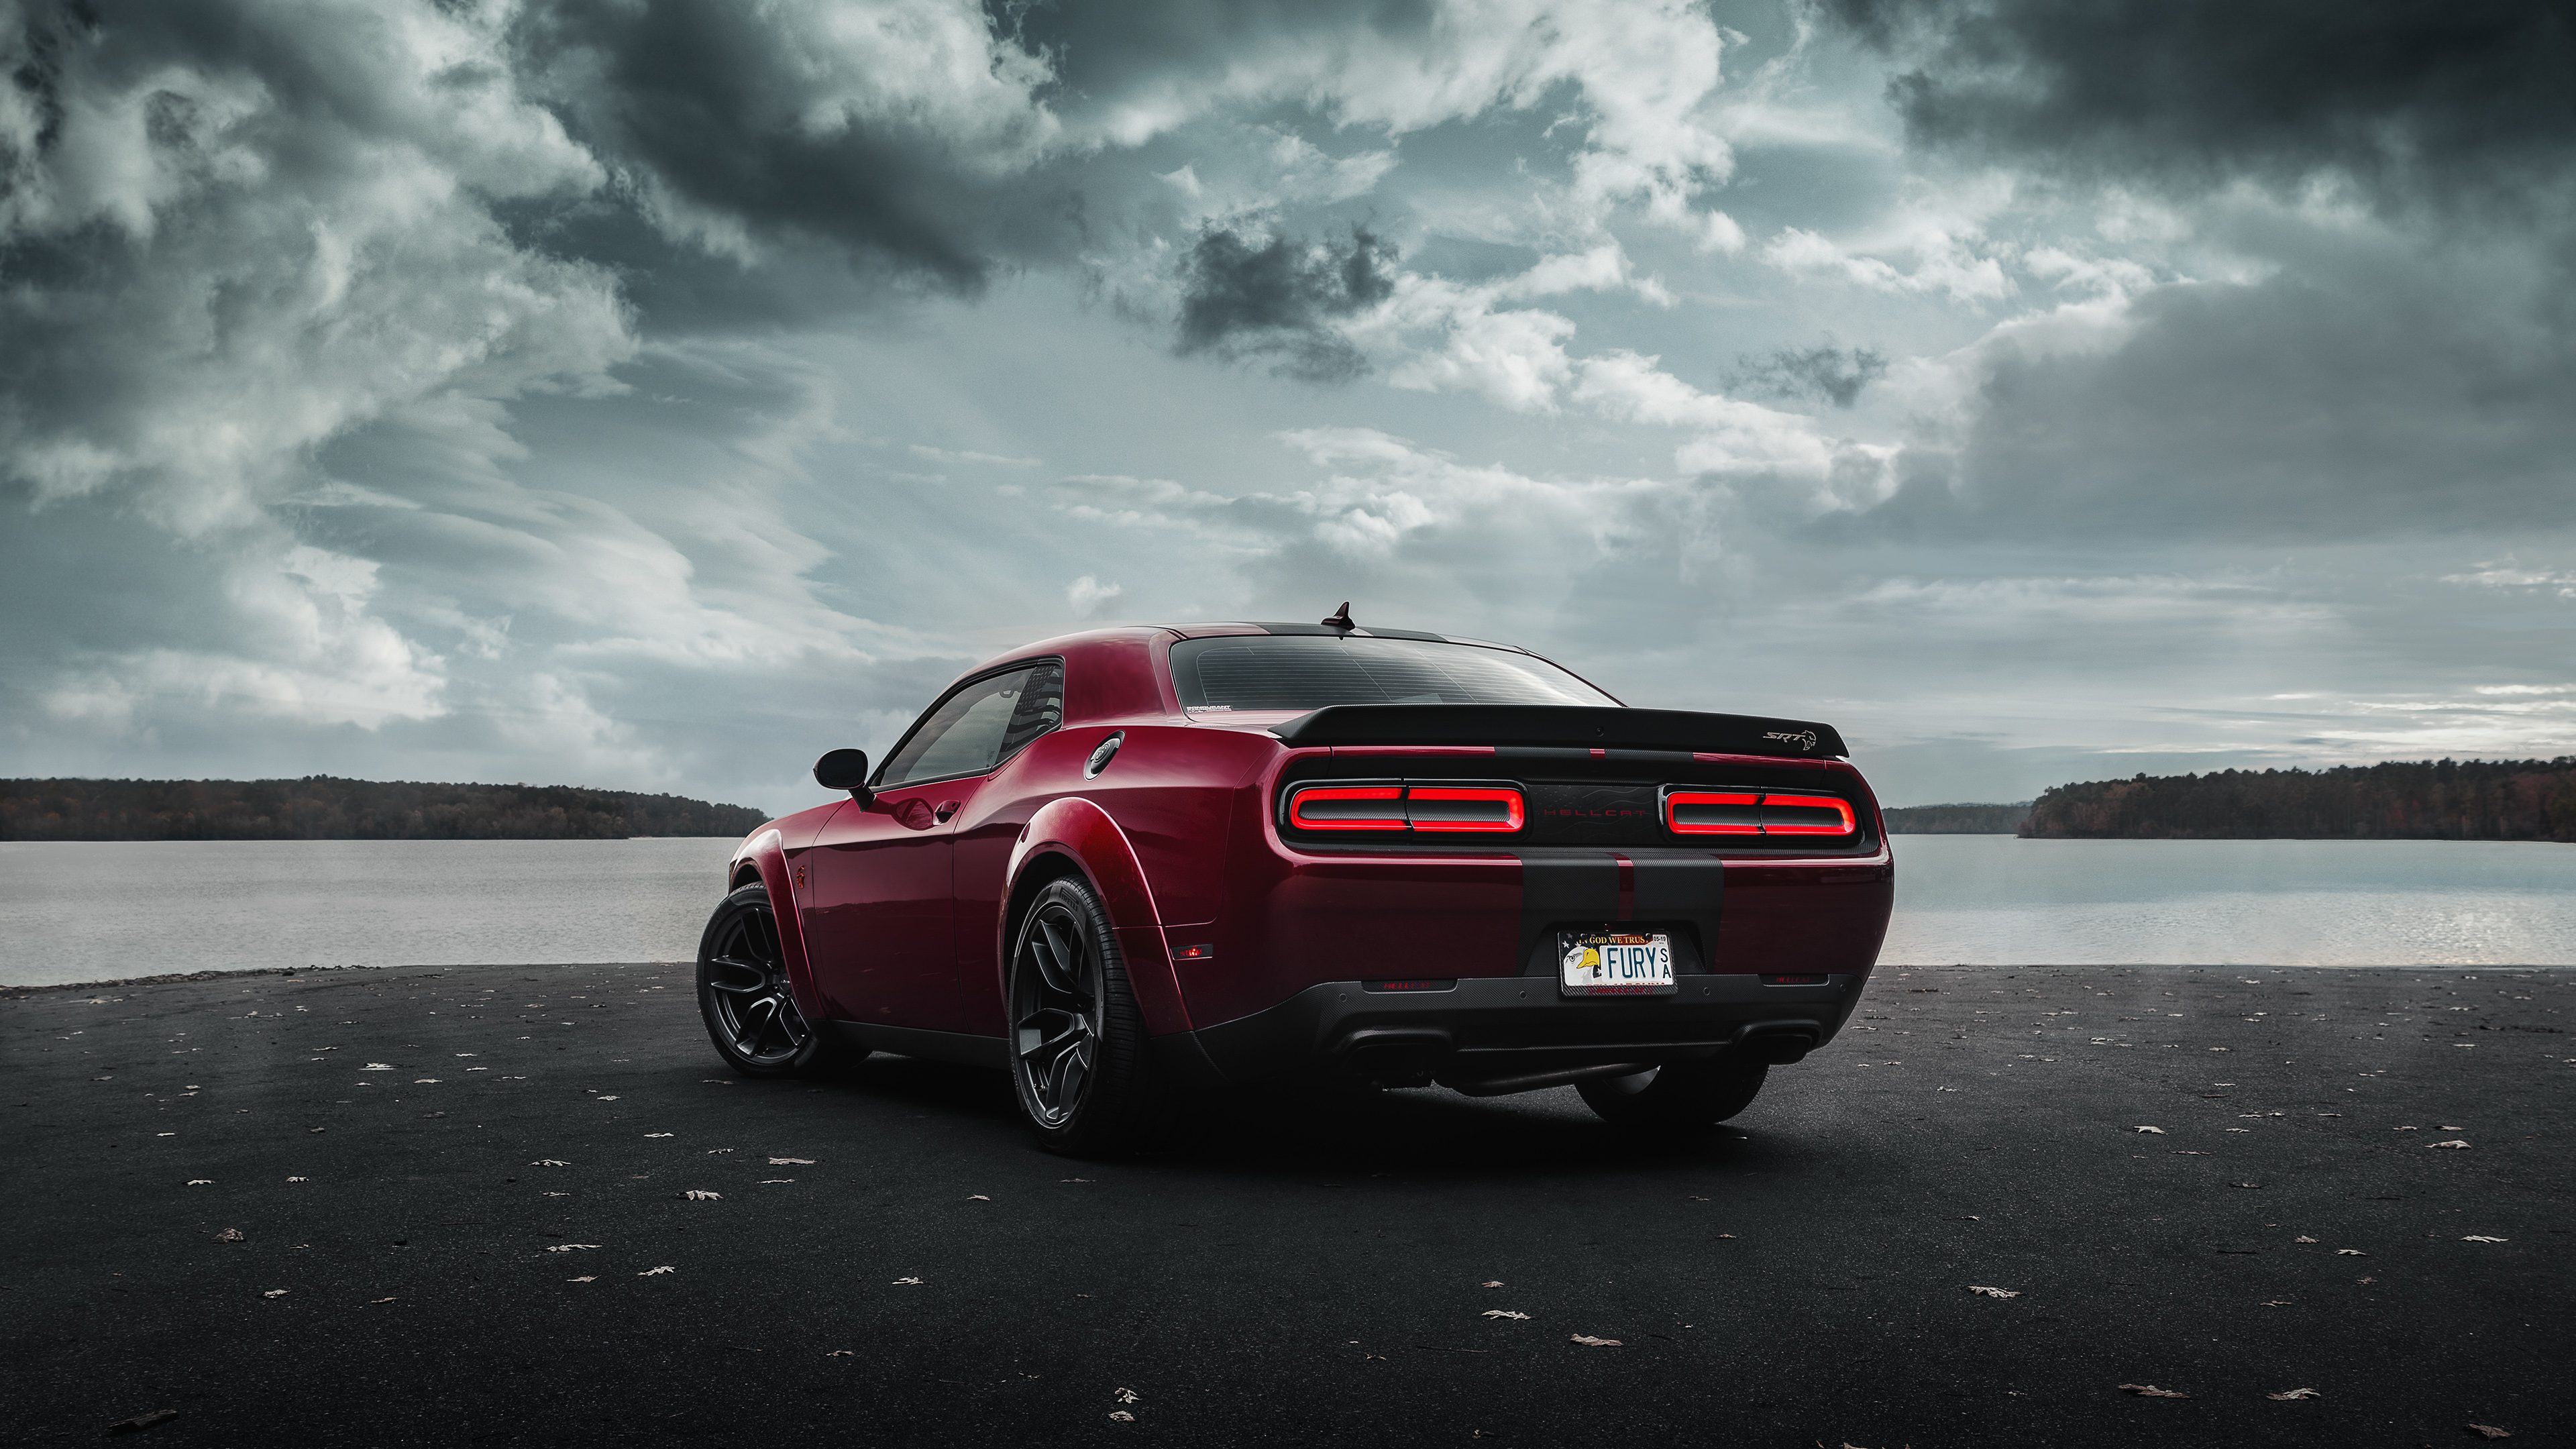 dodge challenger srt hellcat widebody 2019 1572660959 - Dodge Challenger SRT Hellcat Widebody 2019 - hd-wallpapers, dodge challenger wallpapers, dodge challenger srt hellcat widebody wallpapers, behance wallpapers, 4k-wallpapers, 2019 cars wallpapers